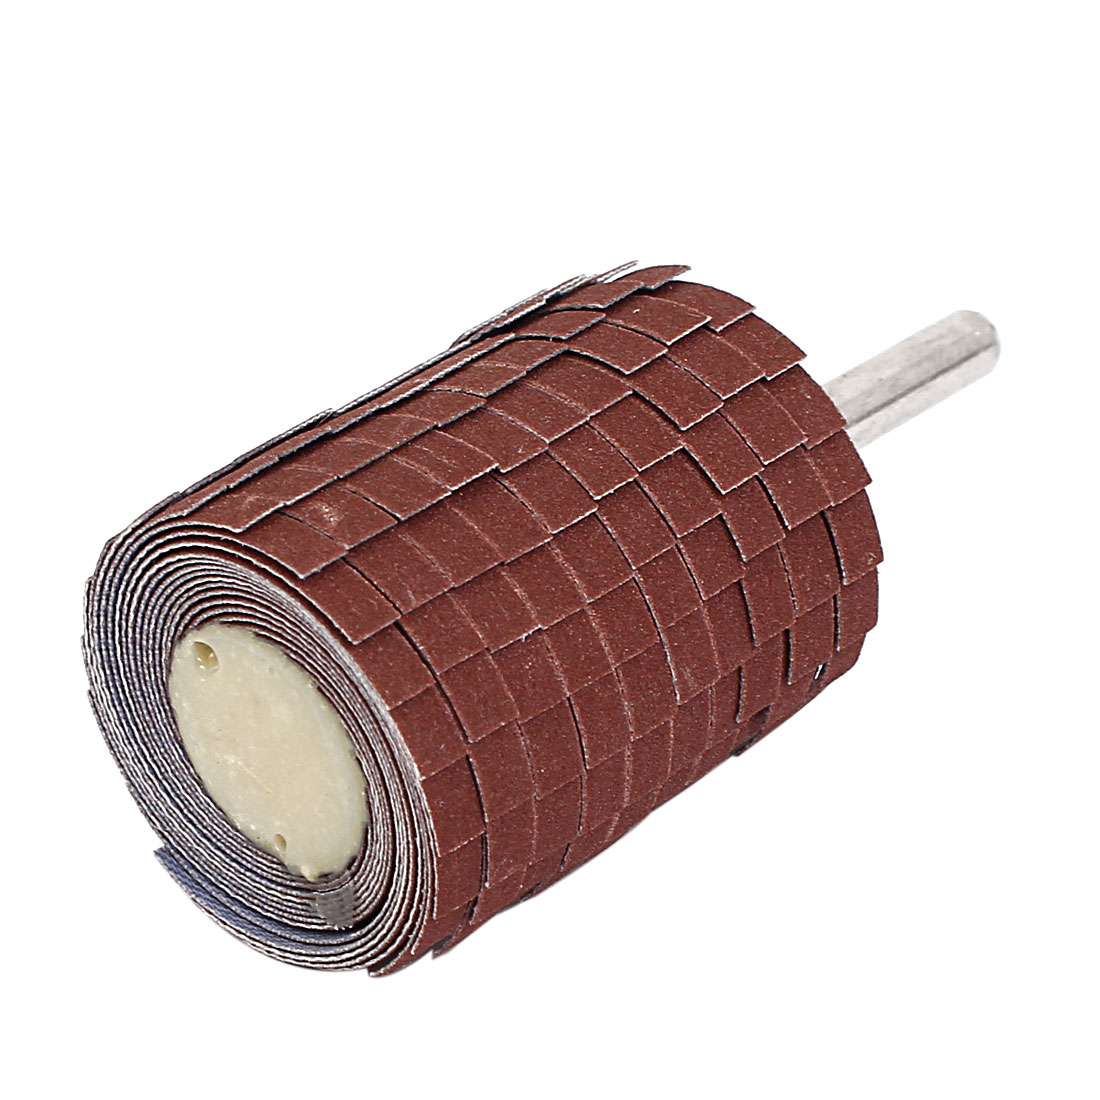 Emery Cloth Sandpaper Wire Abrasive Flap Wheel 320 Grit w Mandrel